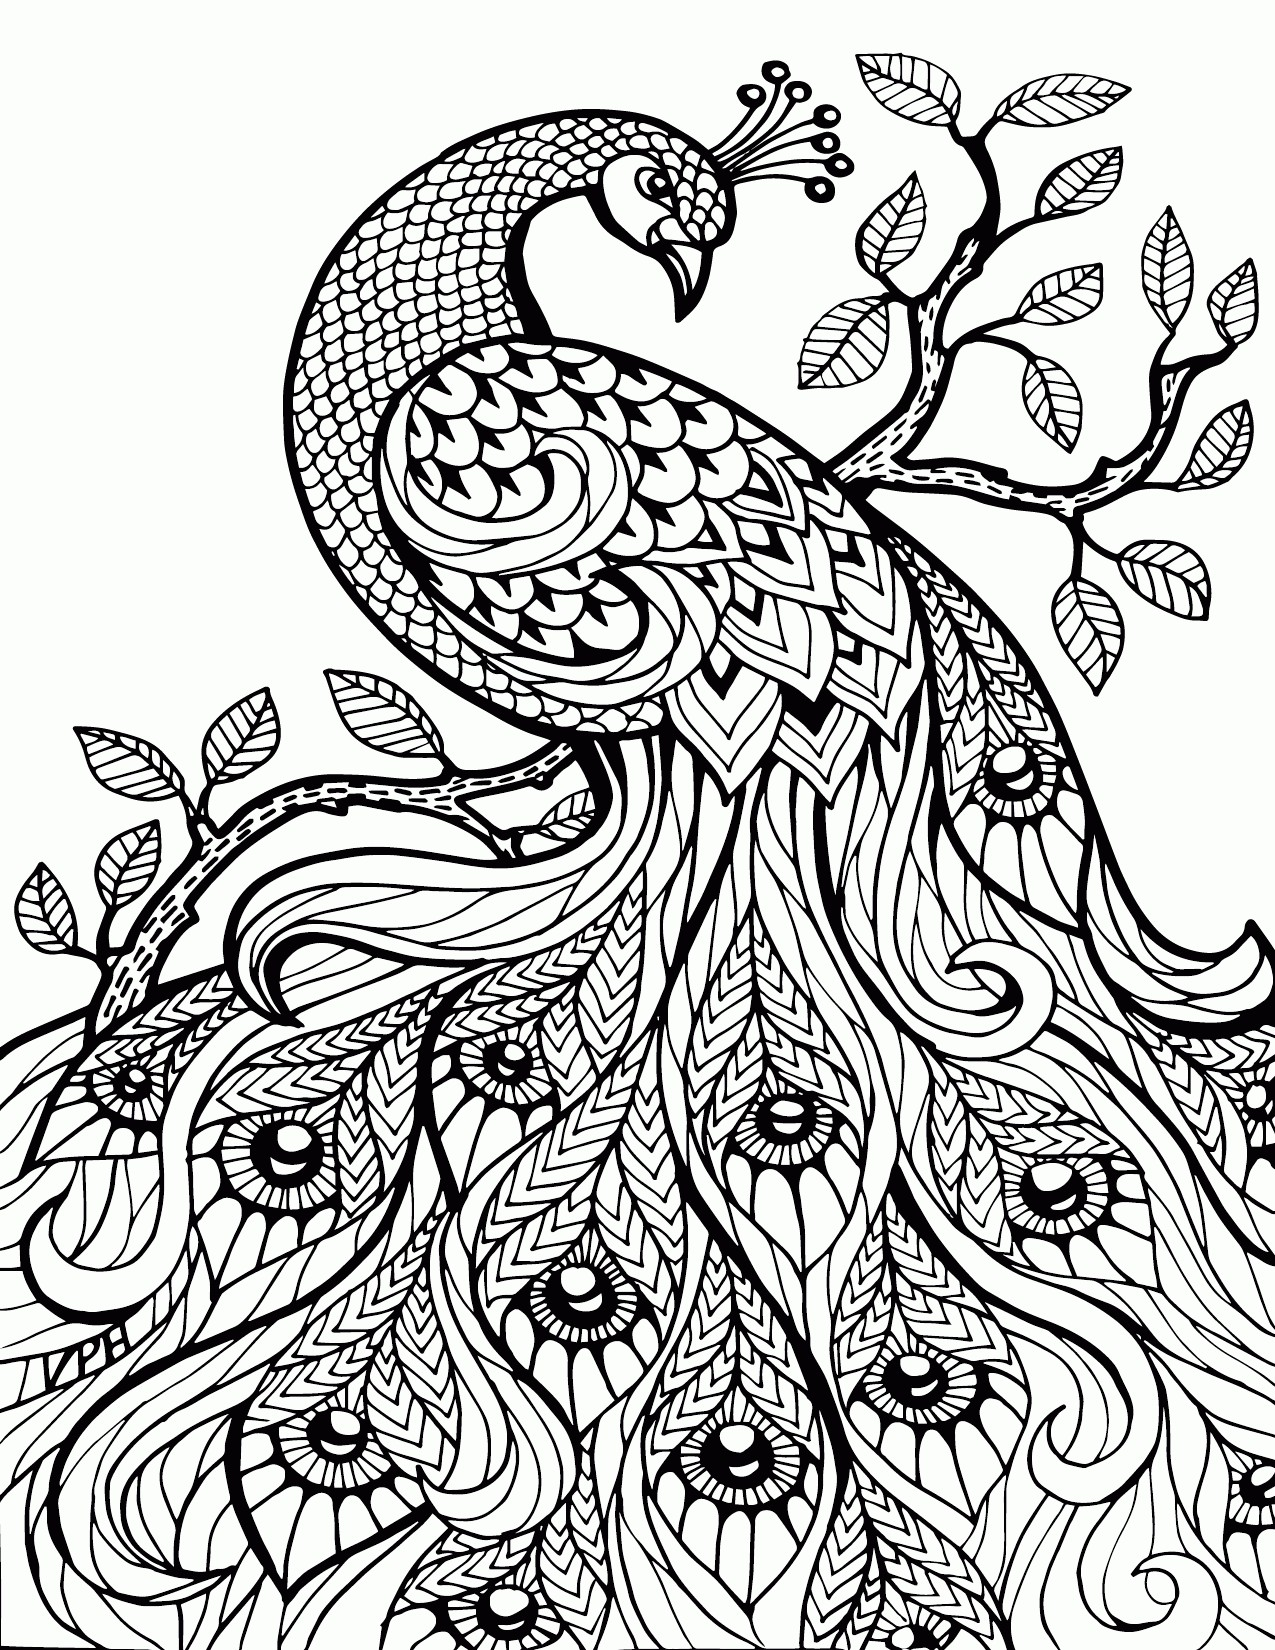 Printable Therapeutic Coloring Pages at GetDrawings.com | Free for ...